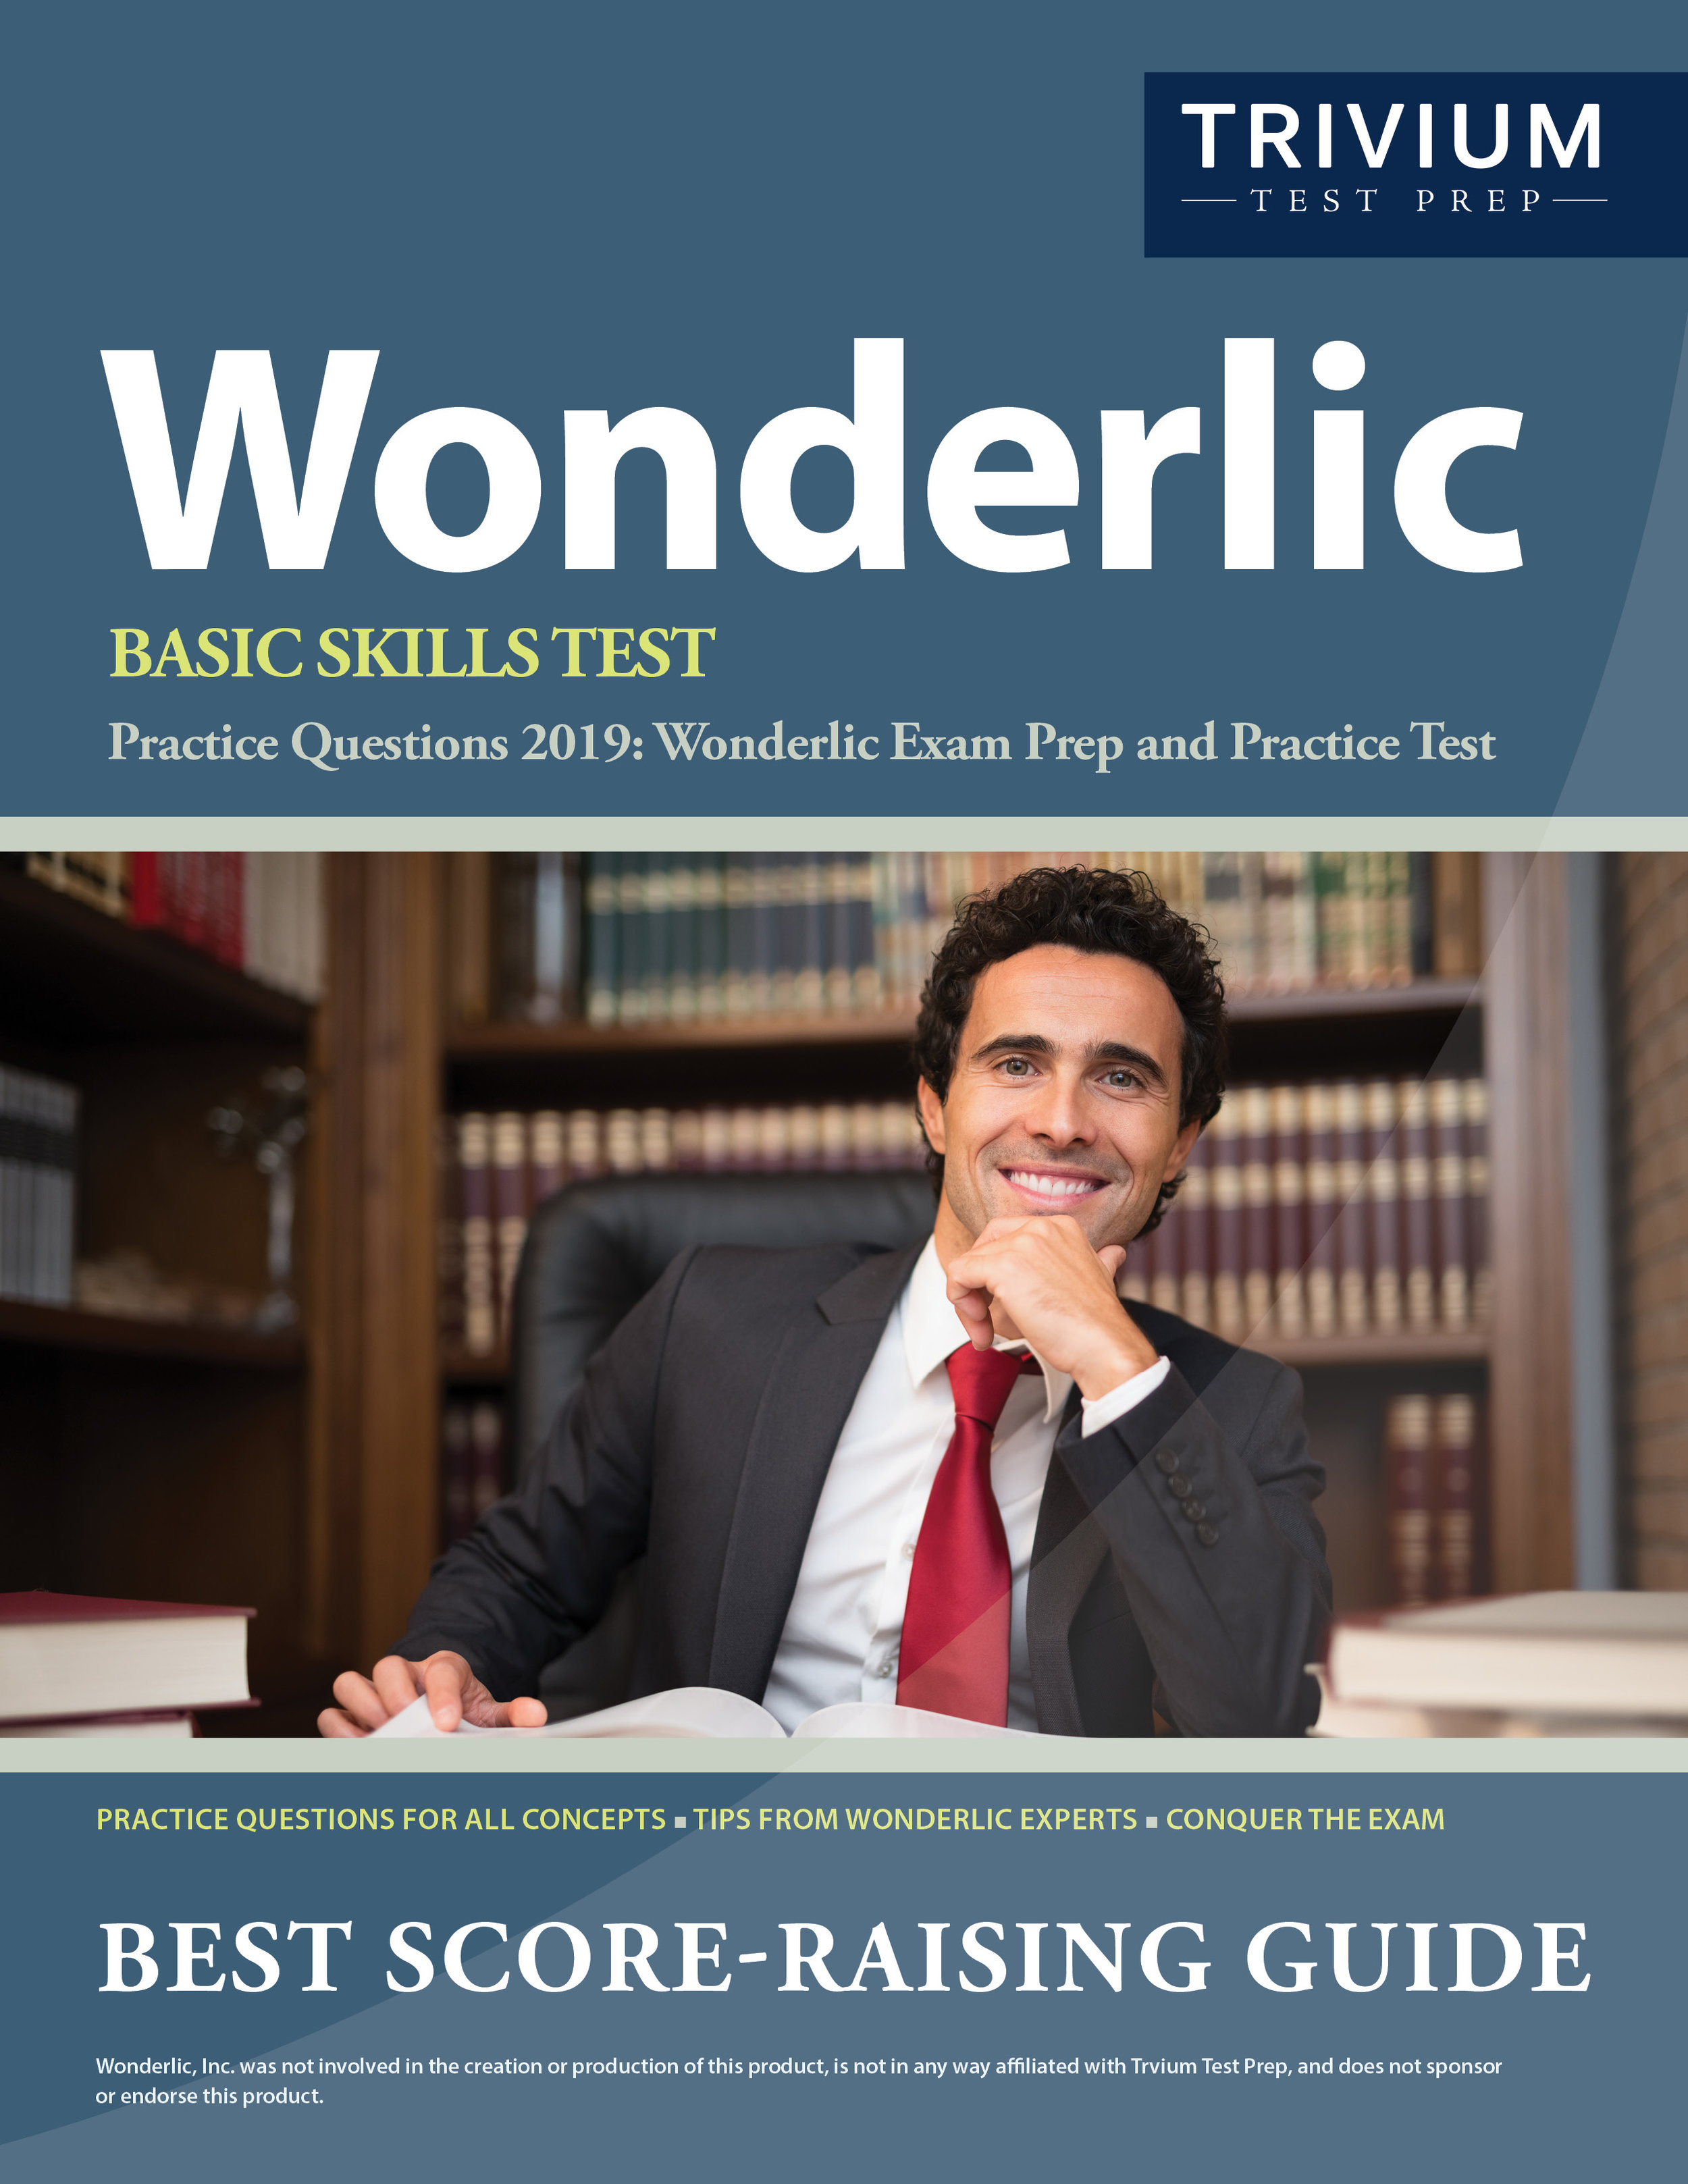 wonderlic_PT_2019_cover_website.jpg